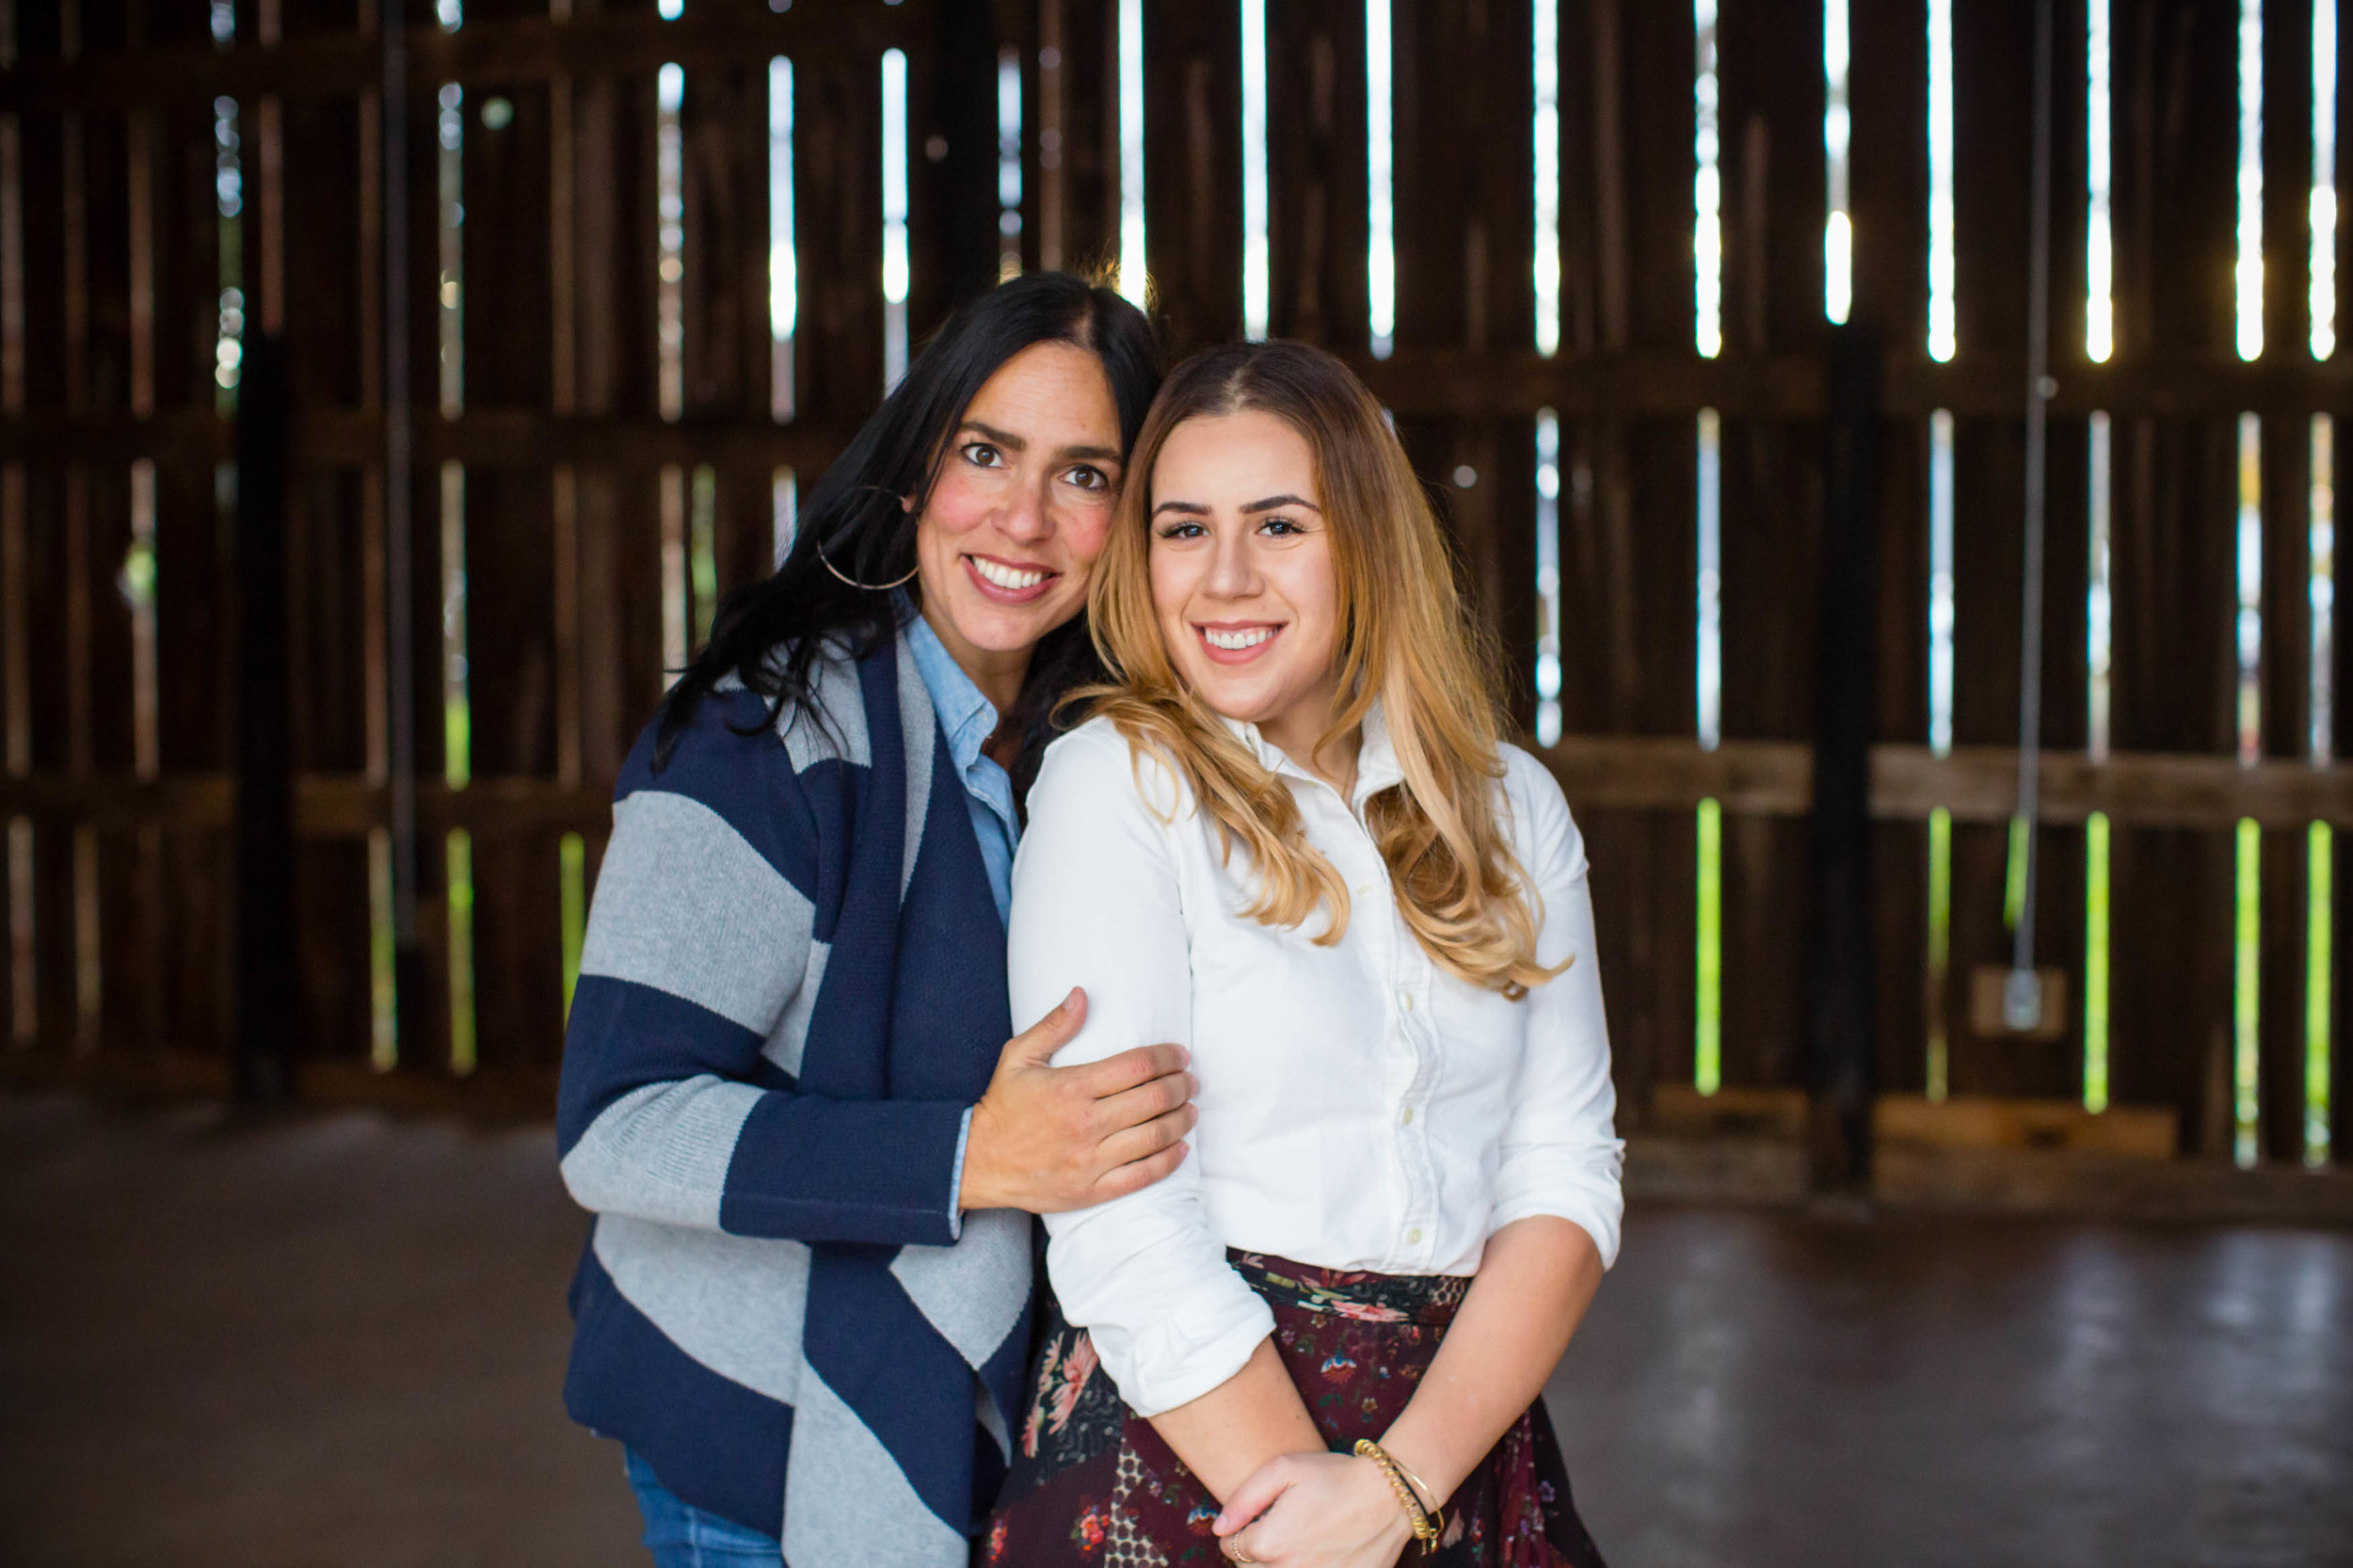 Sharon Boustani (left) and Victoria Boustani (right) Mother-Daughter team behind Gilbertsville Farmhouse.